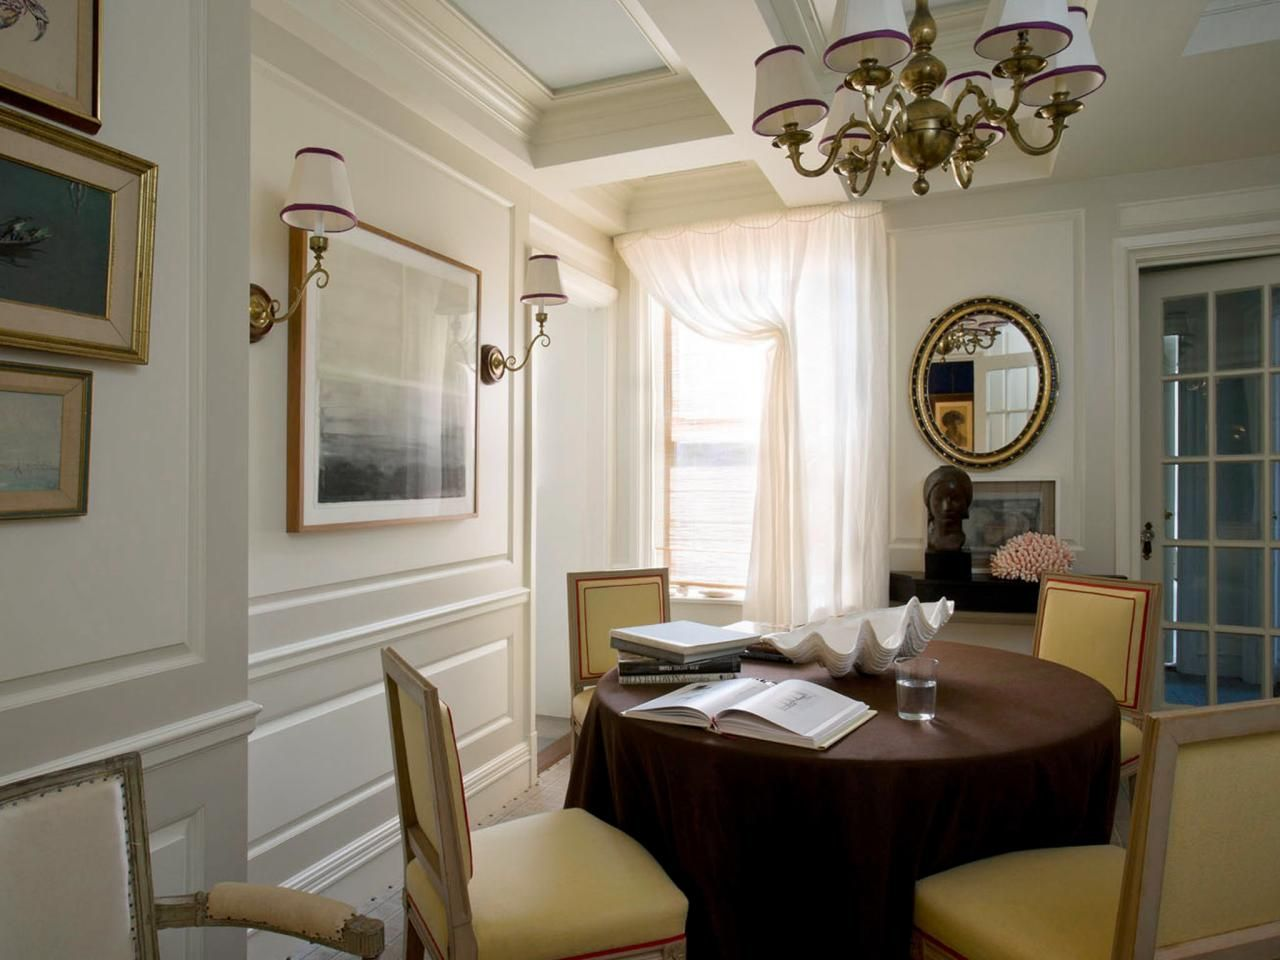 Small Space Decorating Donts Dining RoomsHanging ChandelierChandeliersPaneled